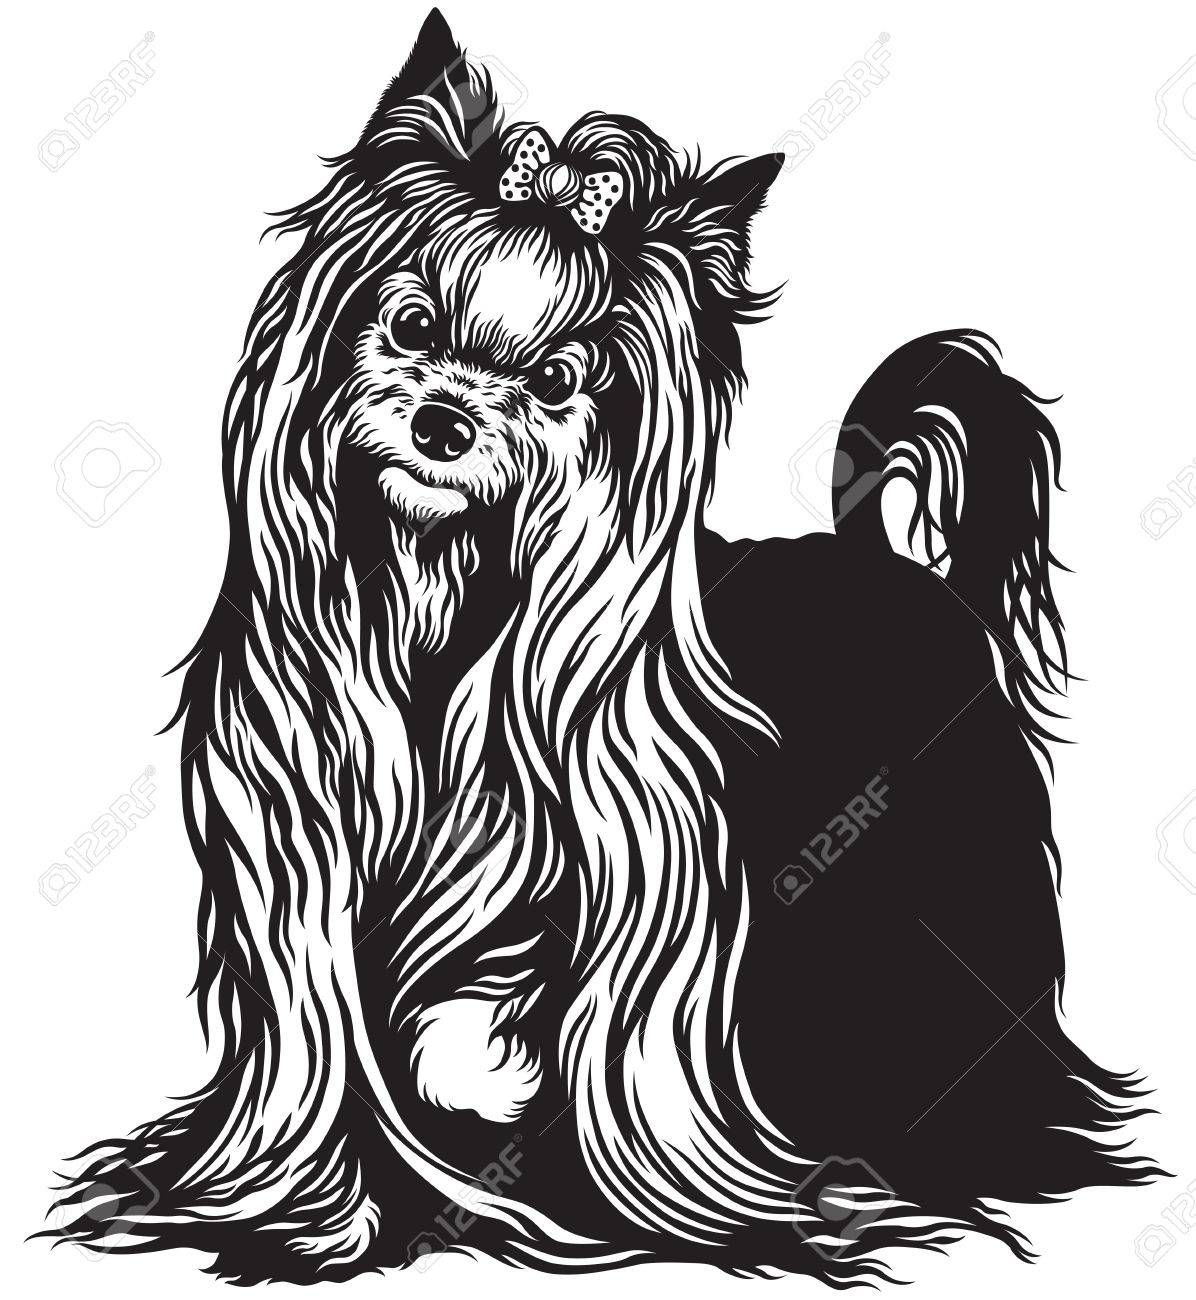 yorkshire terrier dog , black and white image.